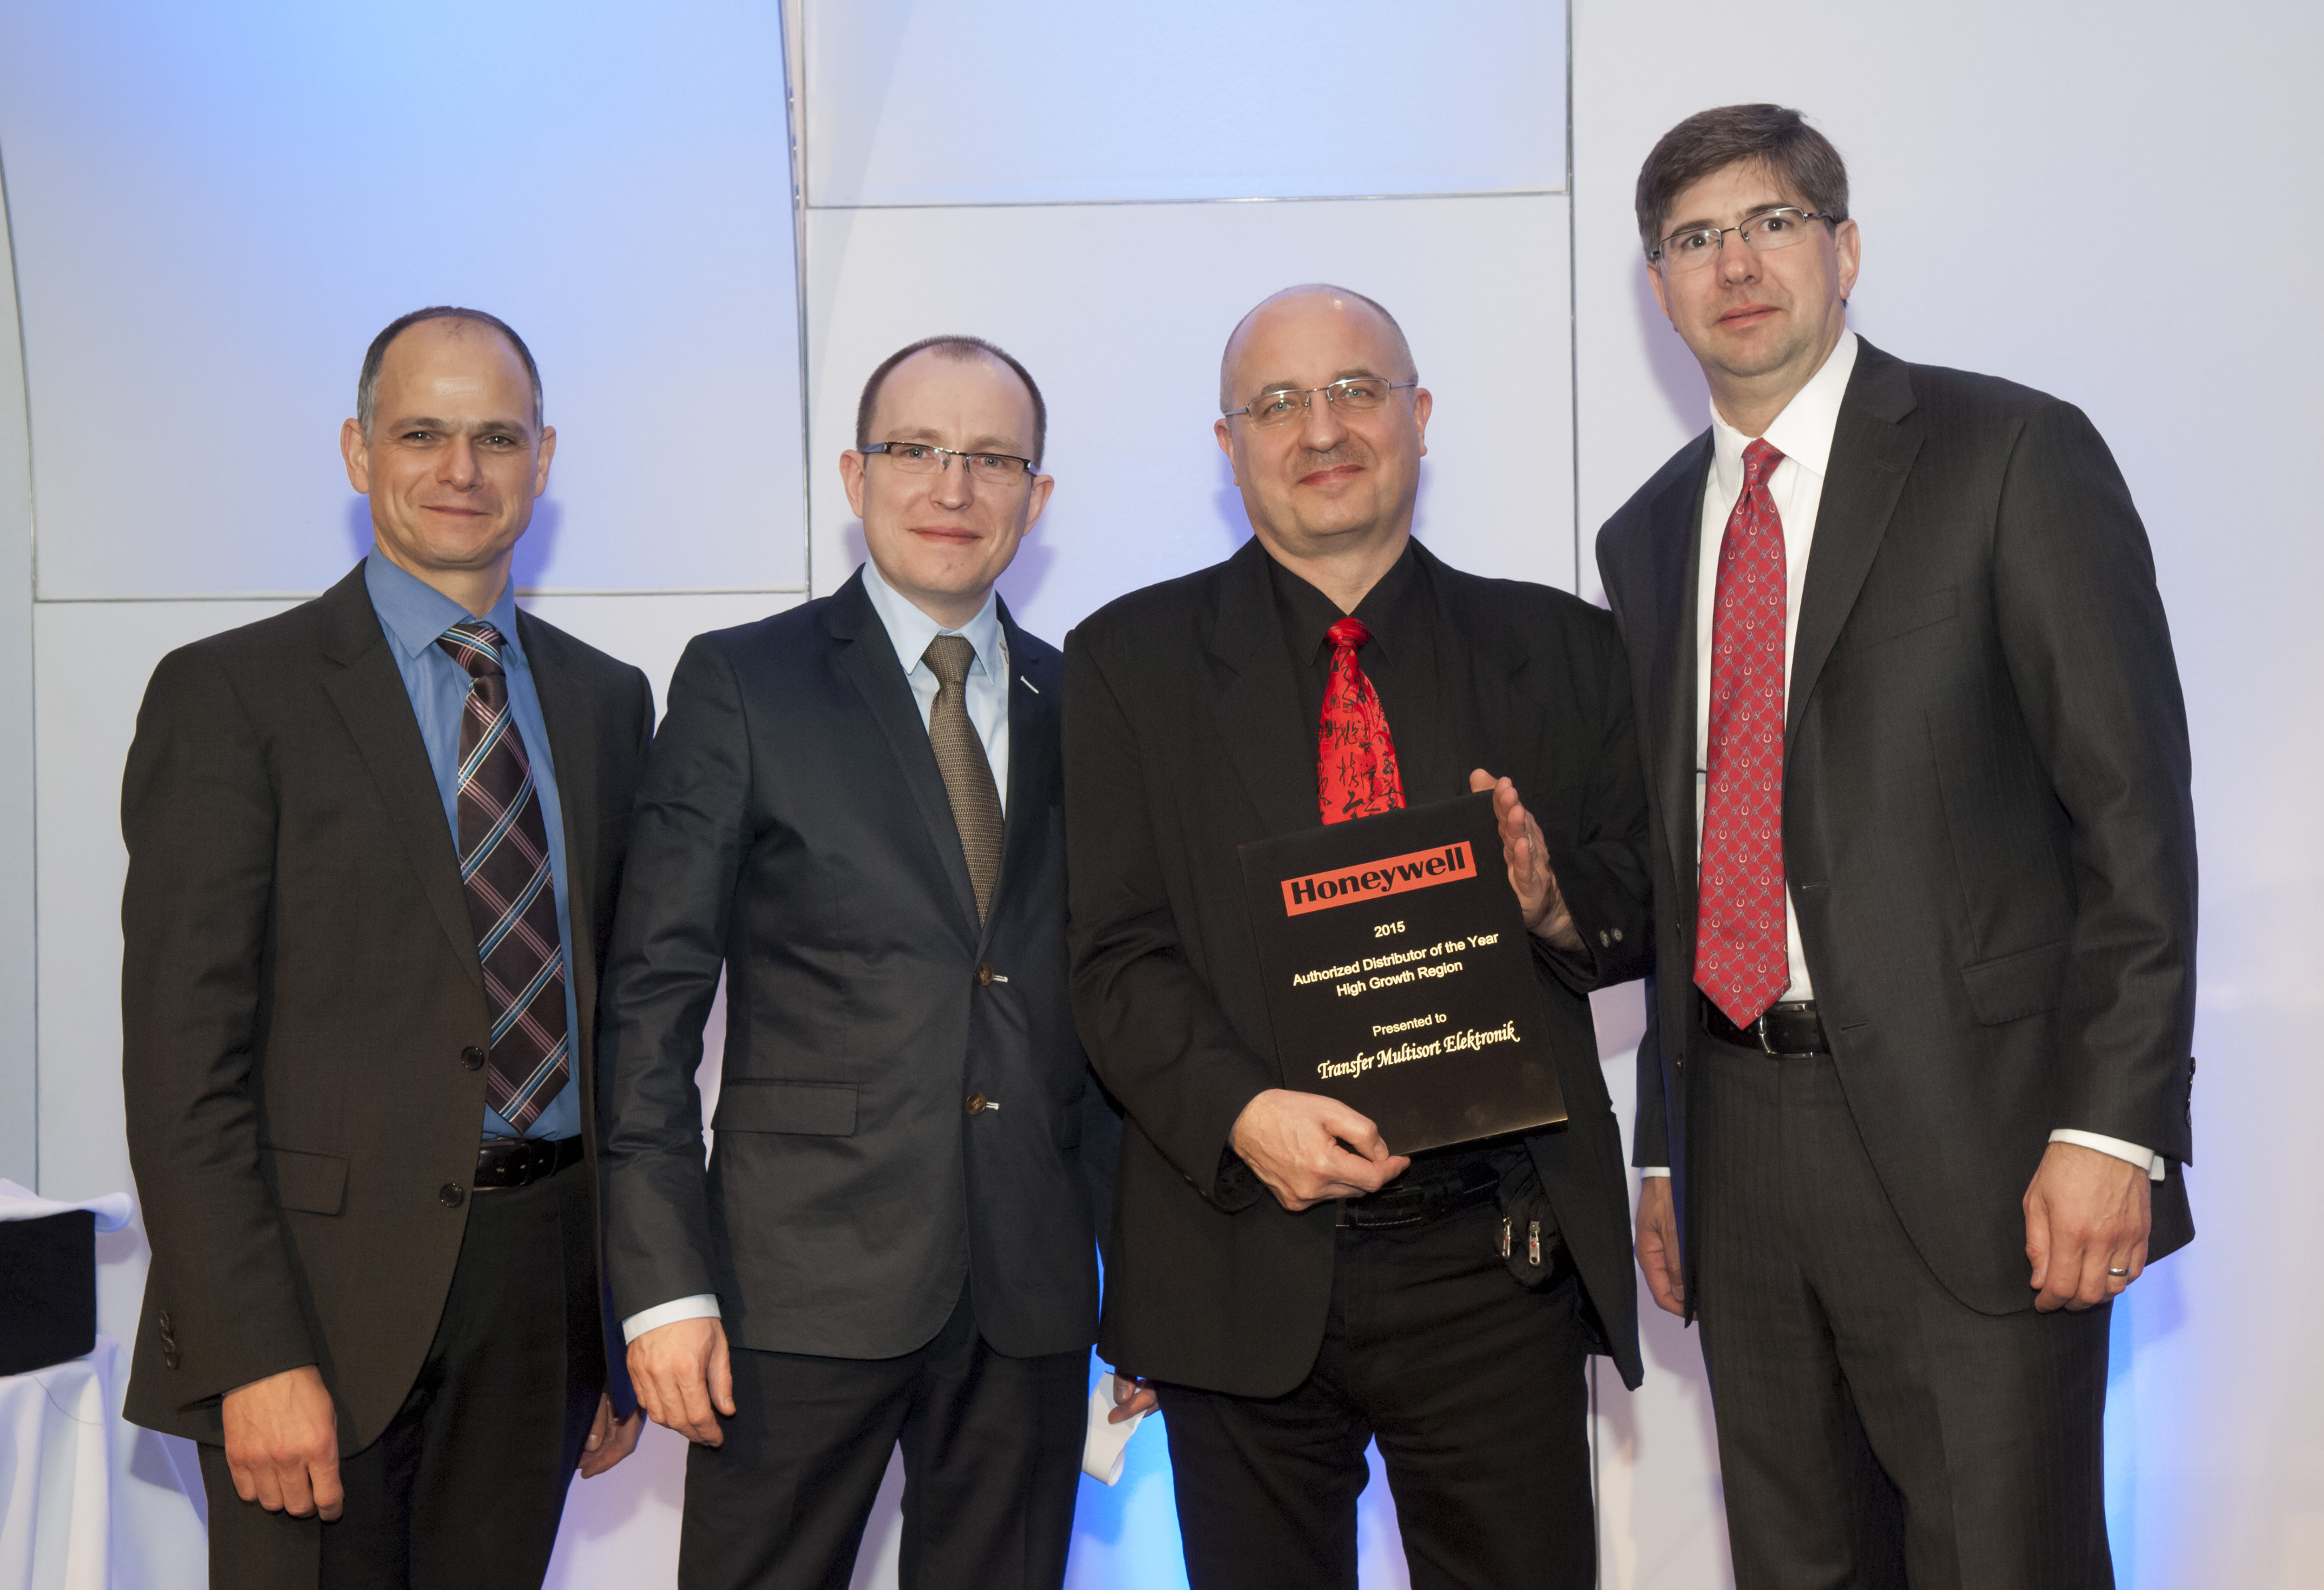 TME receives an award from Honeywell